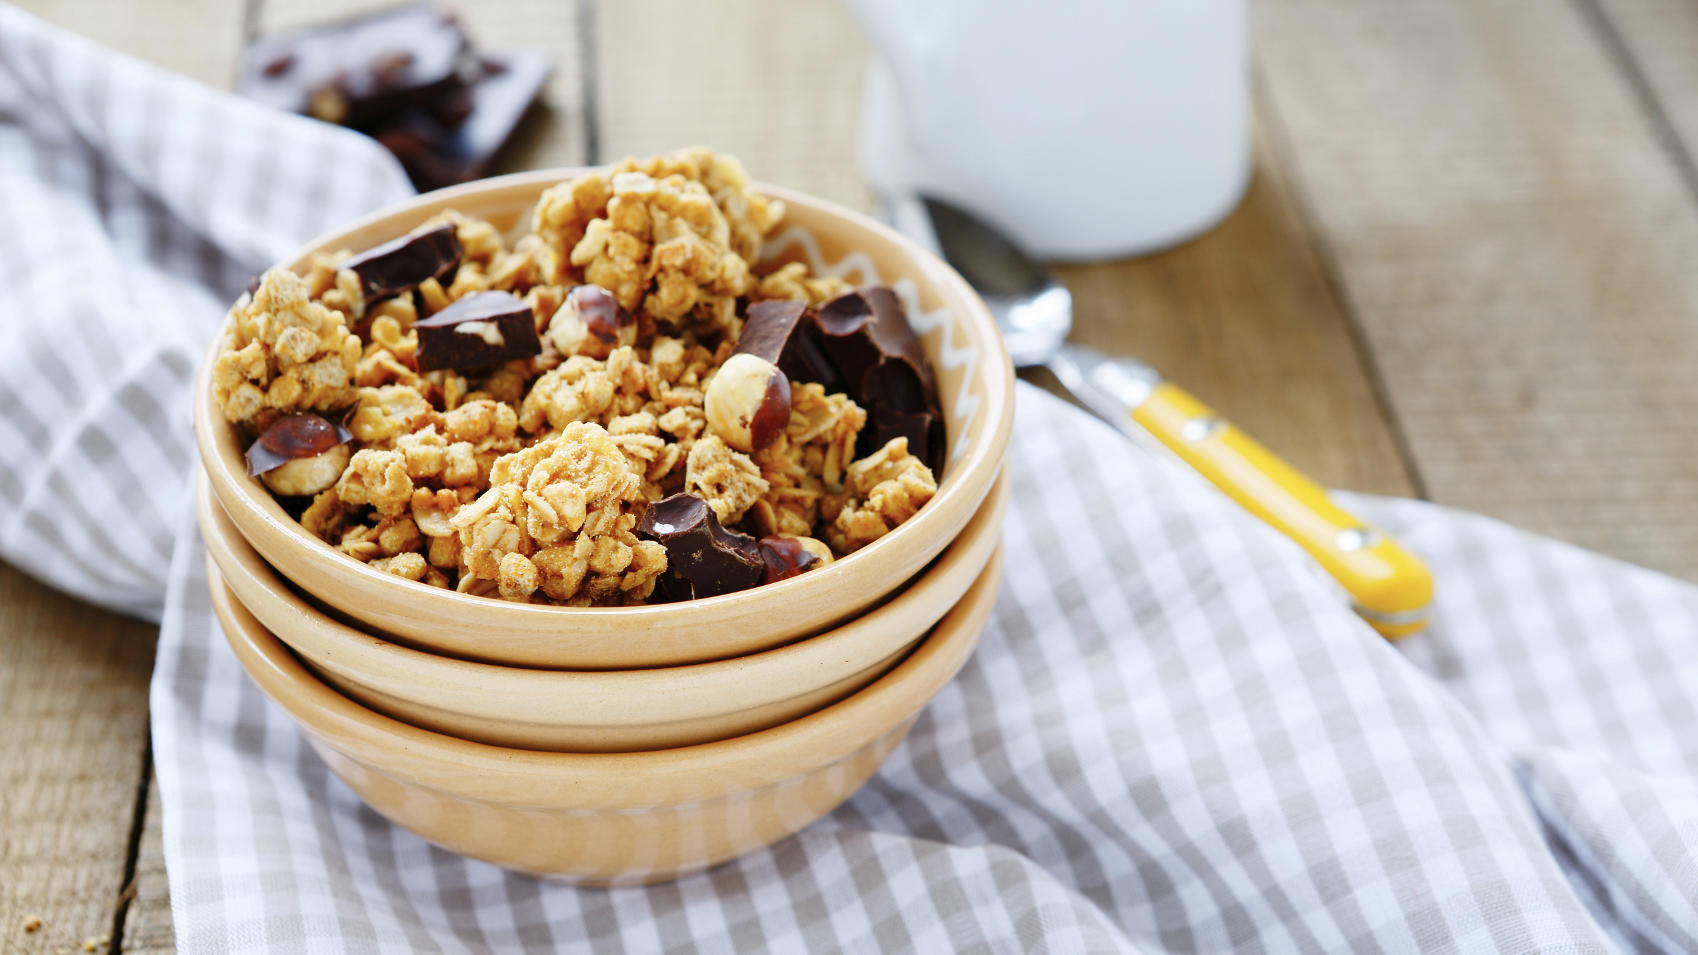 bowl of granola and chocolate chips, food closeup